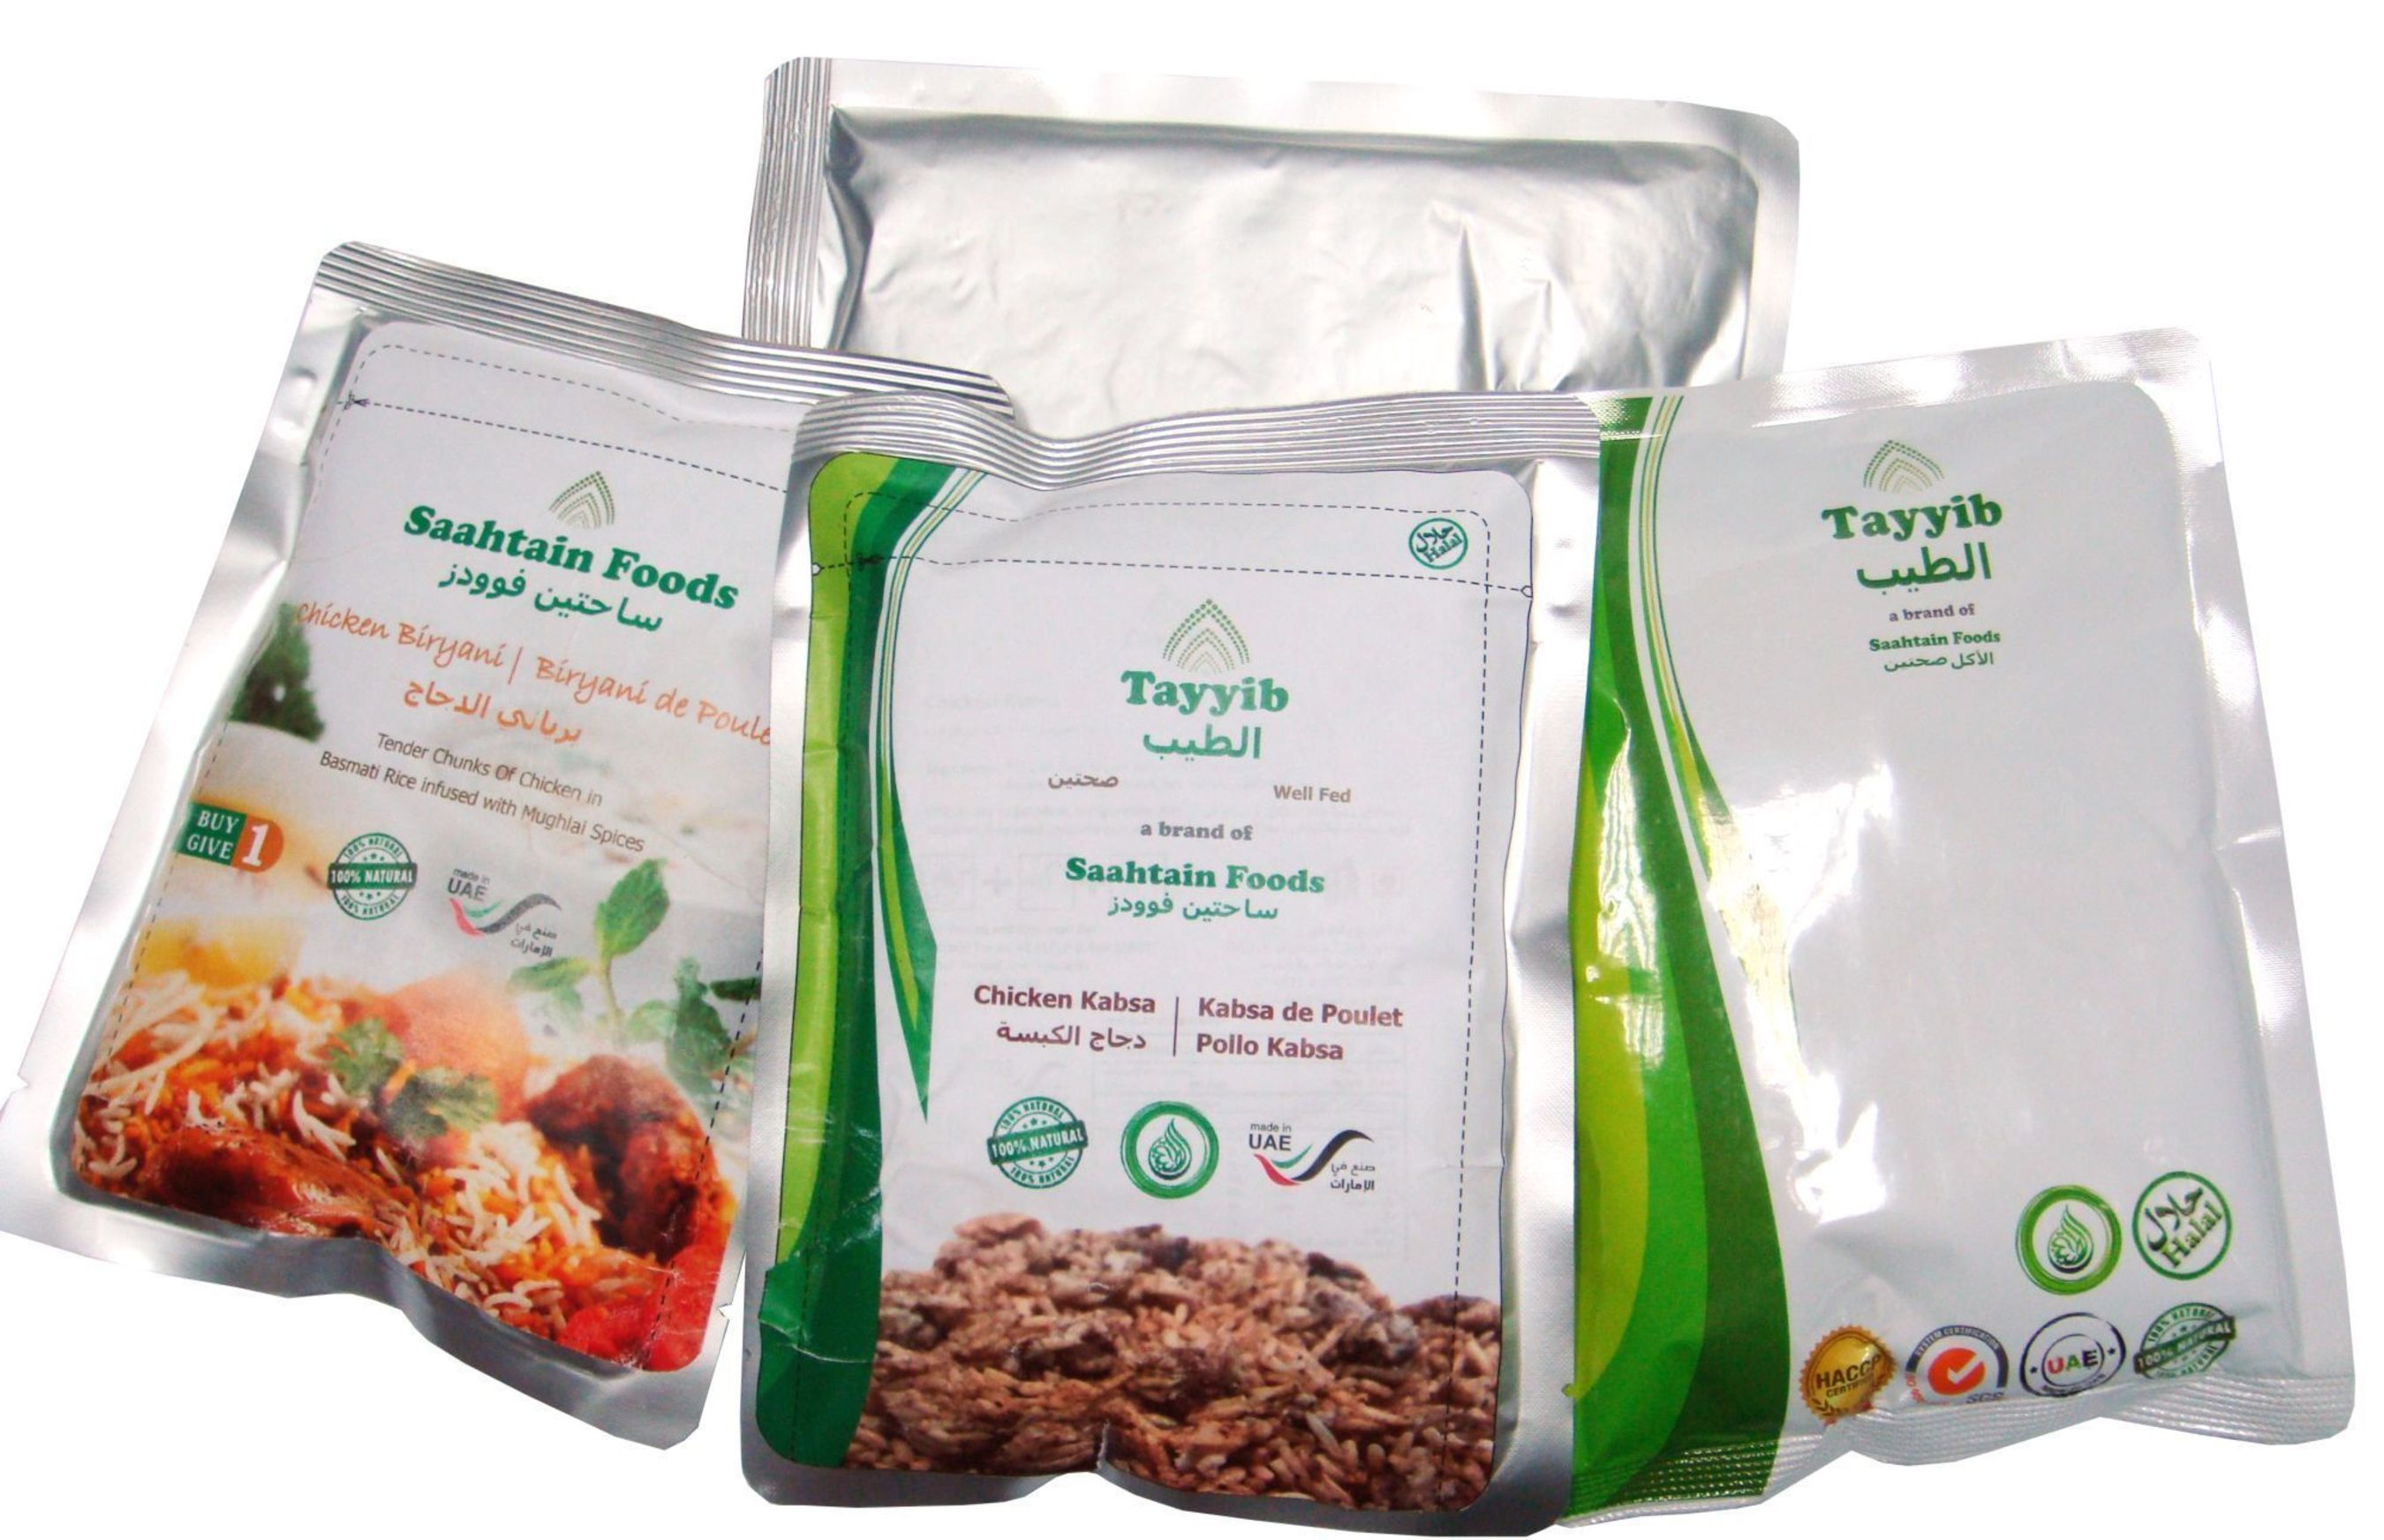 Tayyib Ready to Eat Meals last for 2 years in strong 4 layer pouches (PRNewsFoto/Saahtain Foods)